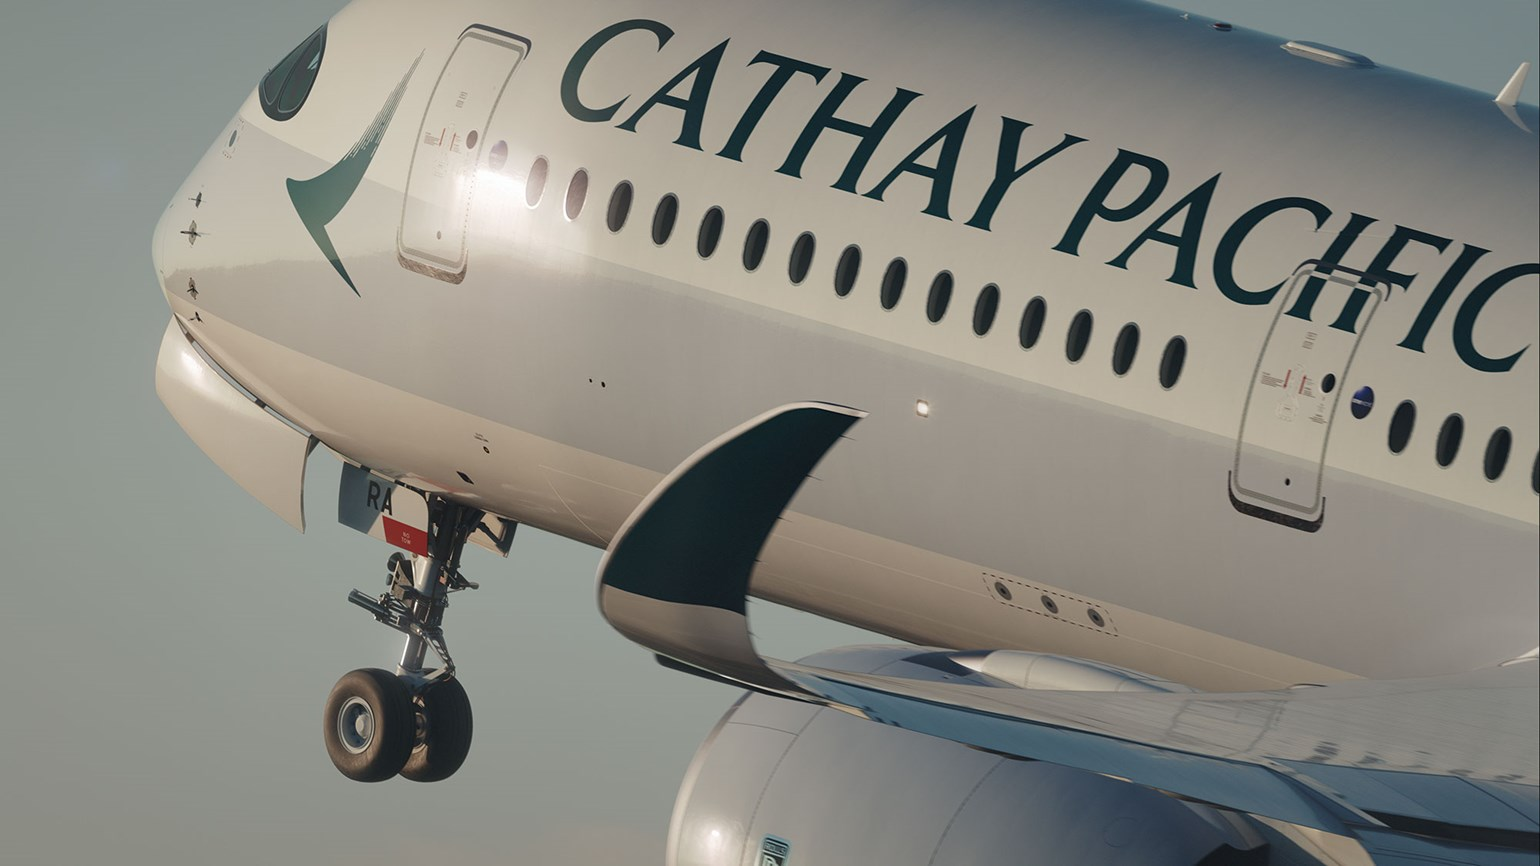 Cathay Pacific CEO resigns after tumultuous week